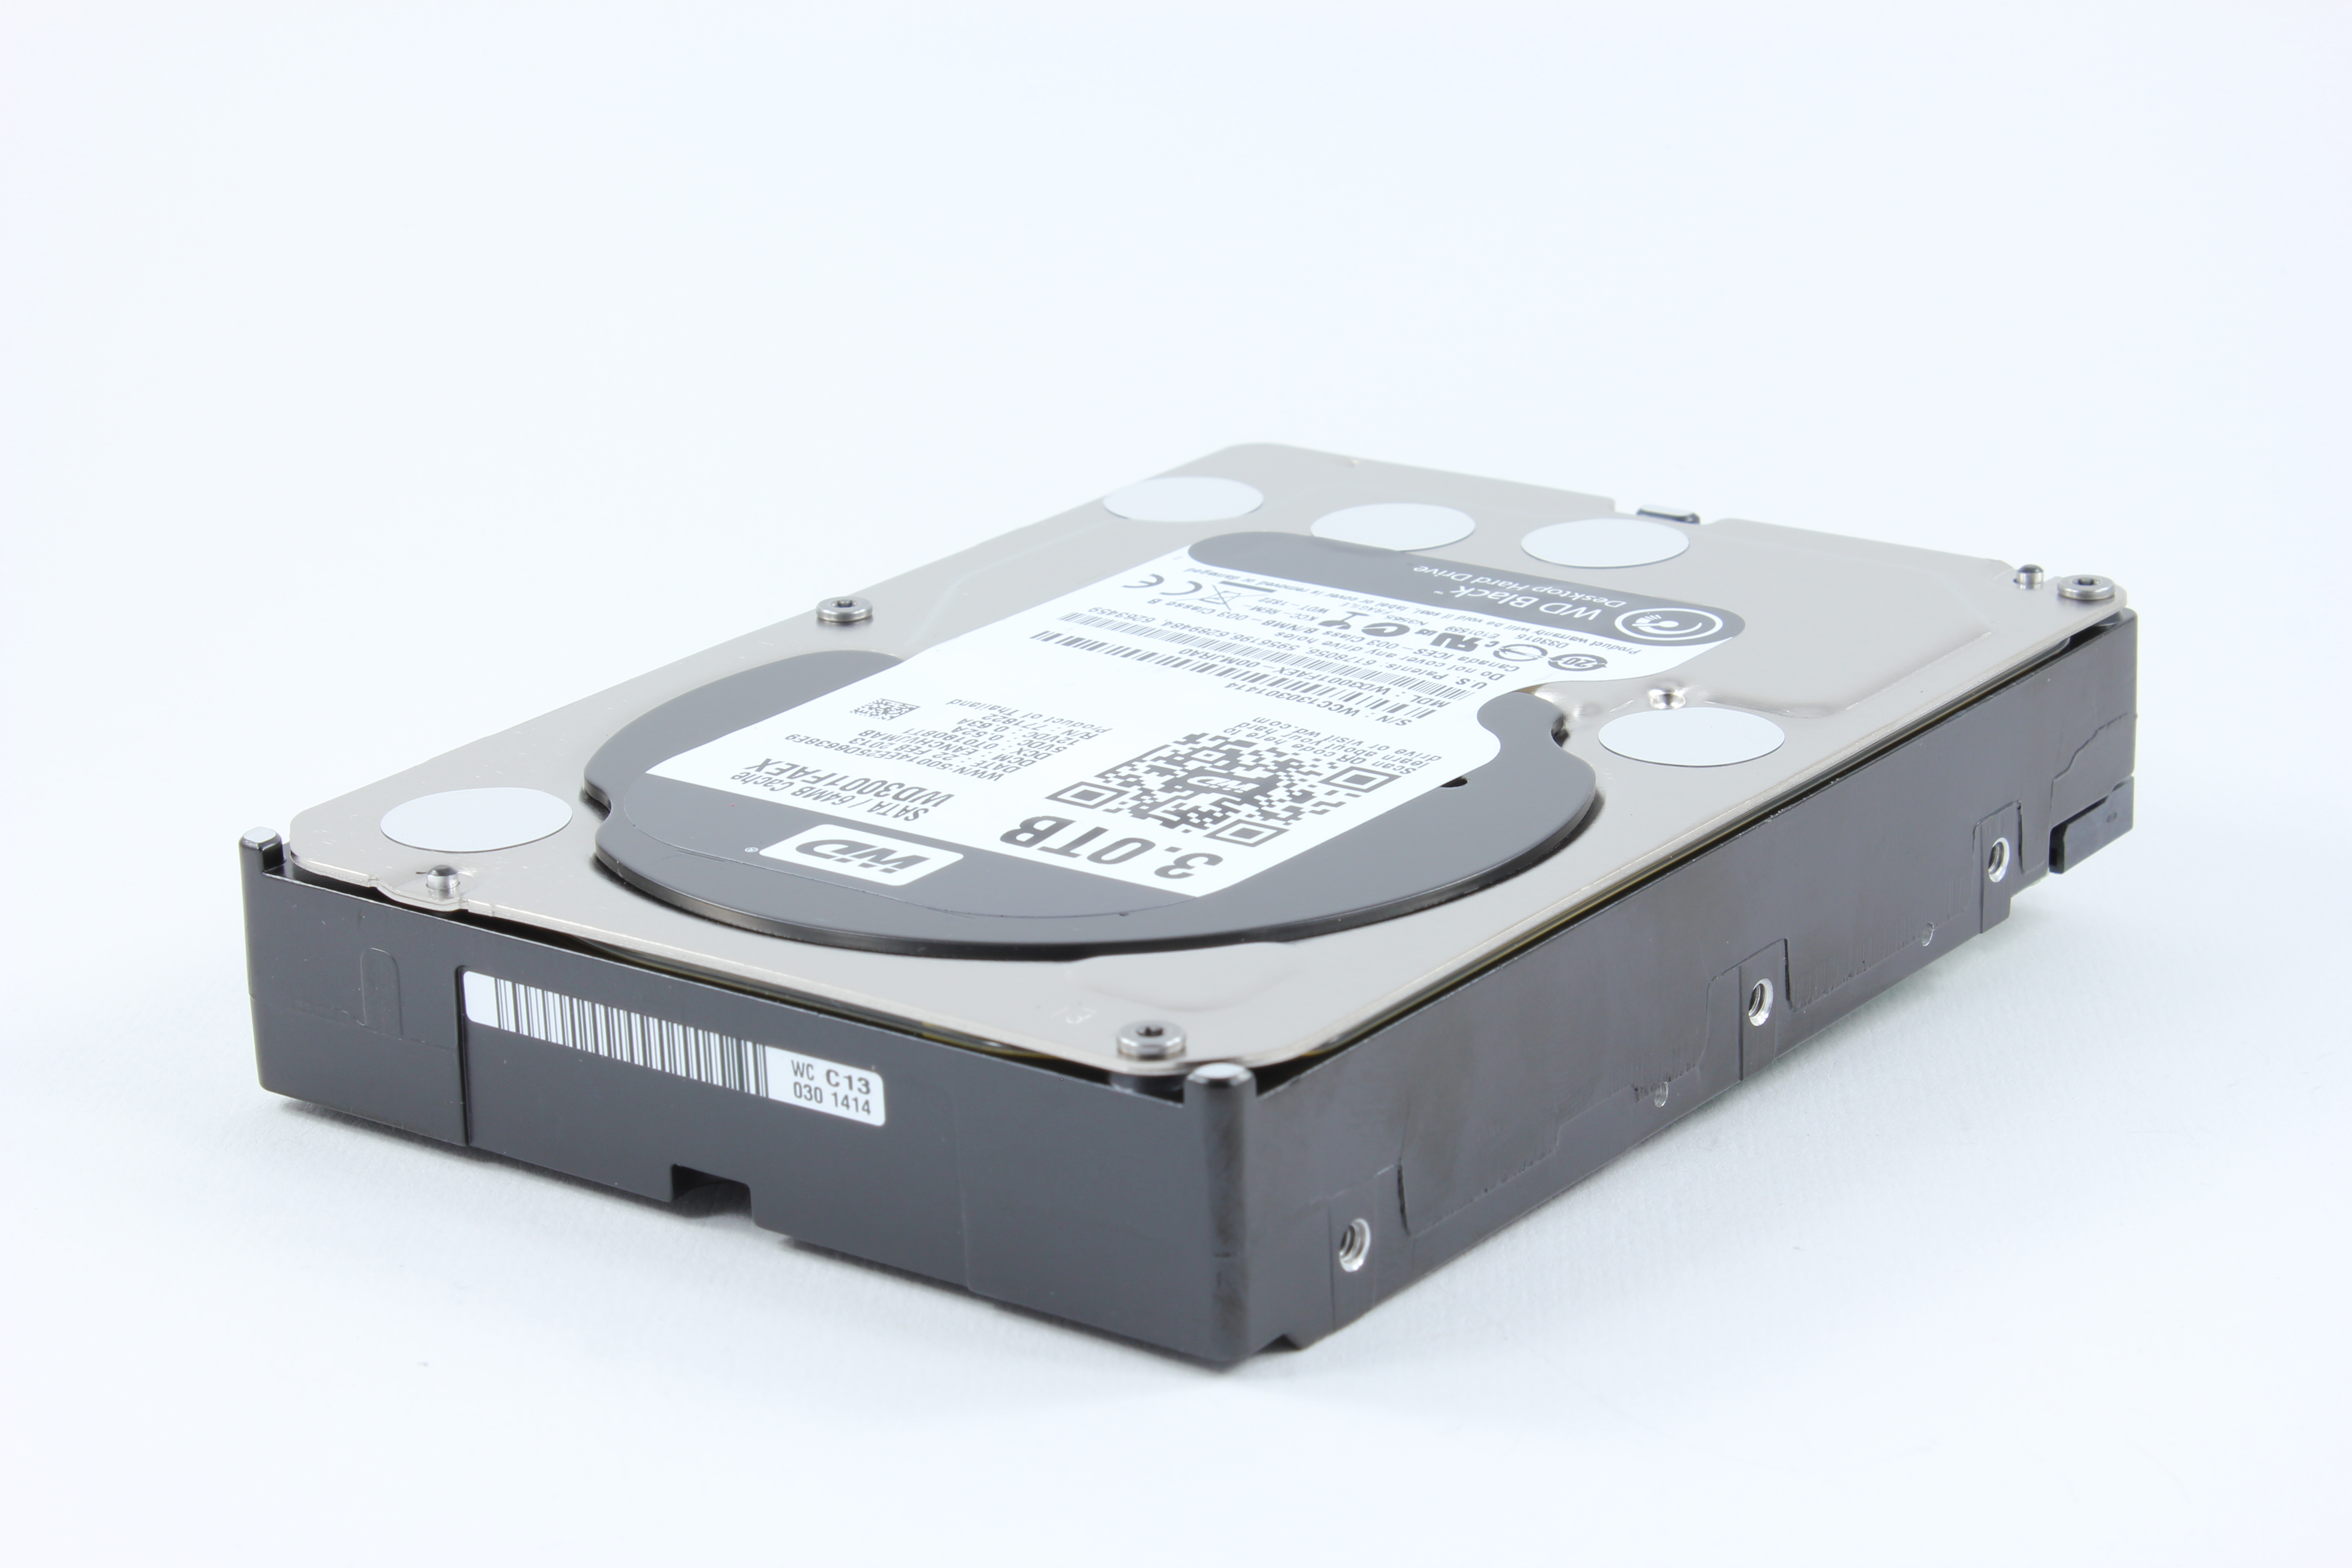 WD3001FAEX_front